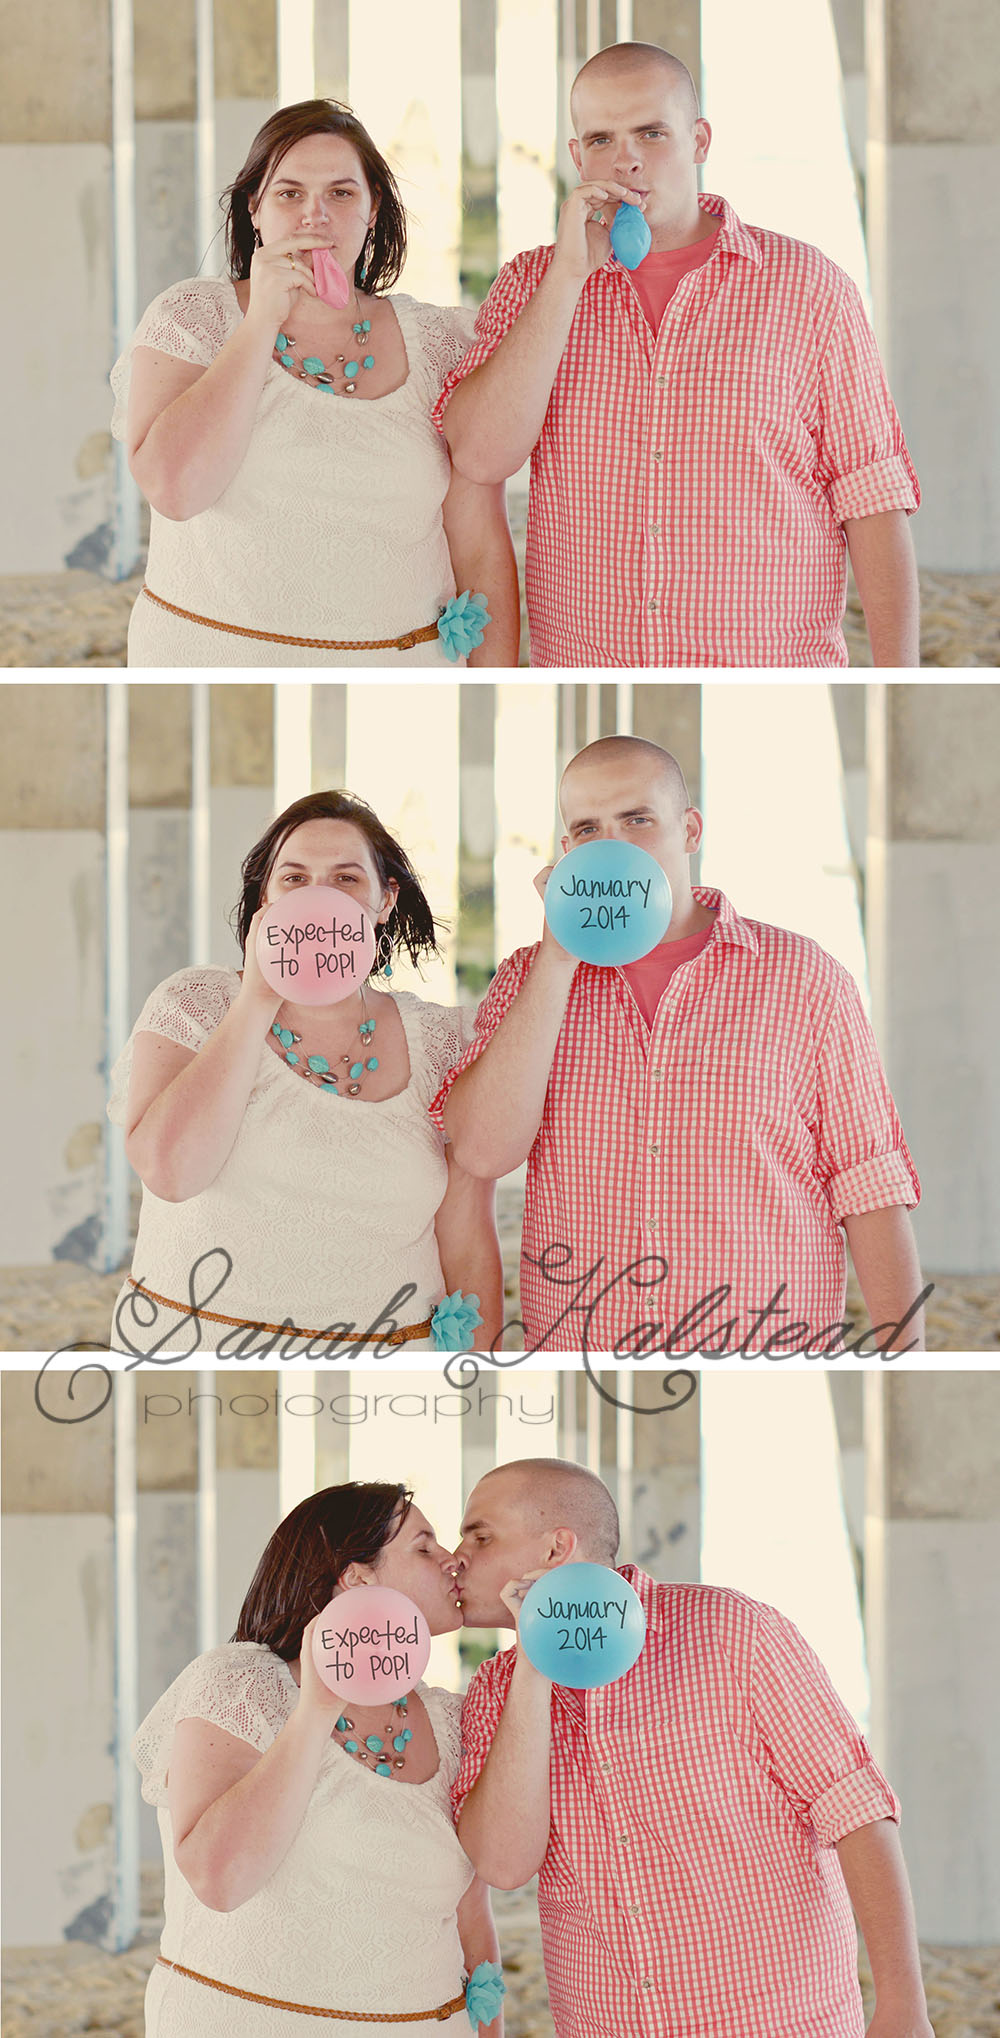 Pregnancy Announcement Photo Ideas